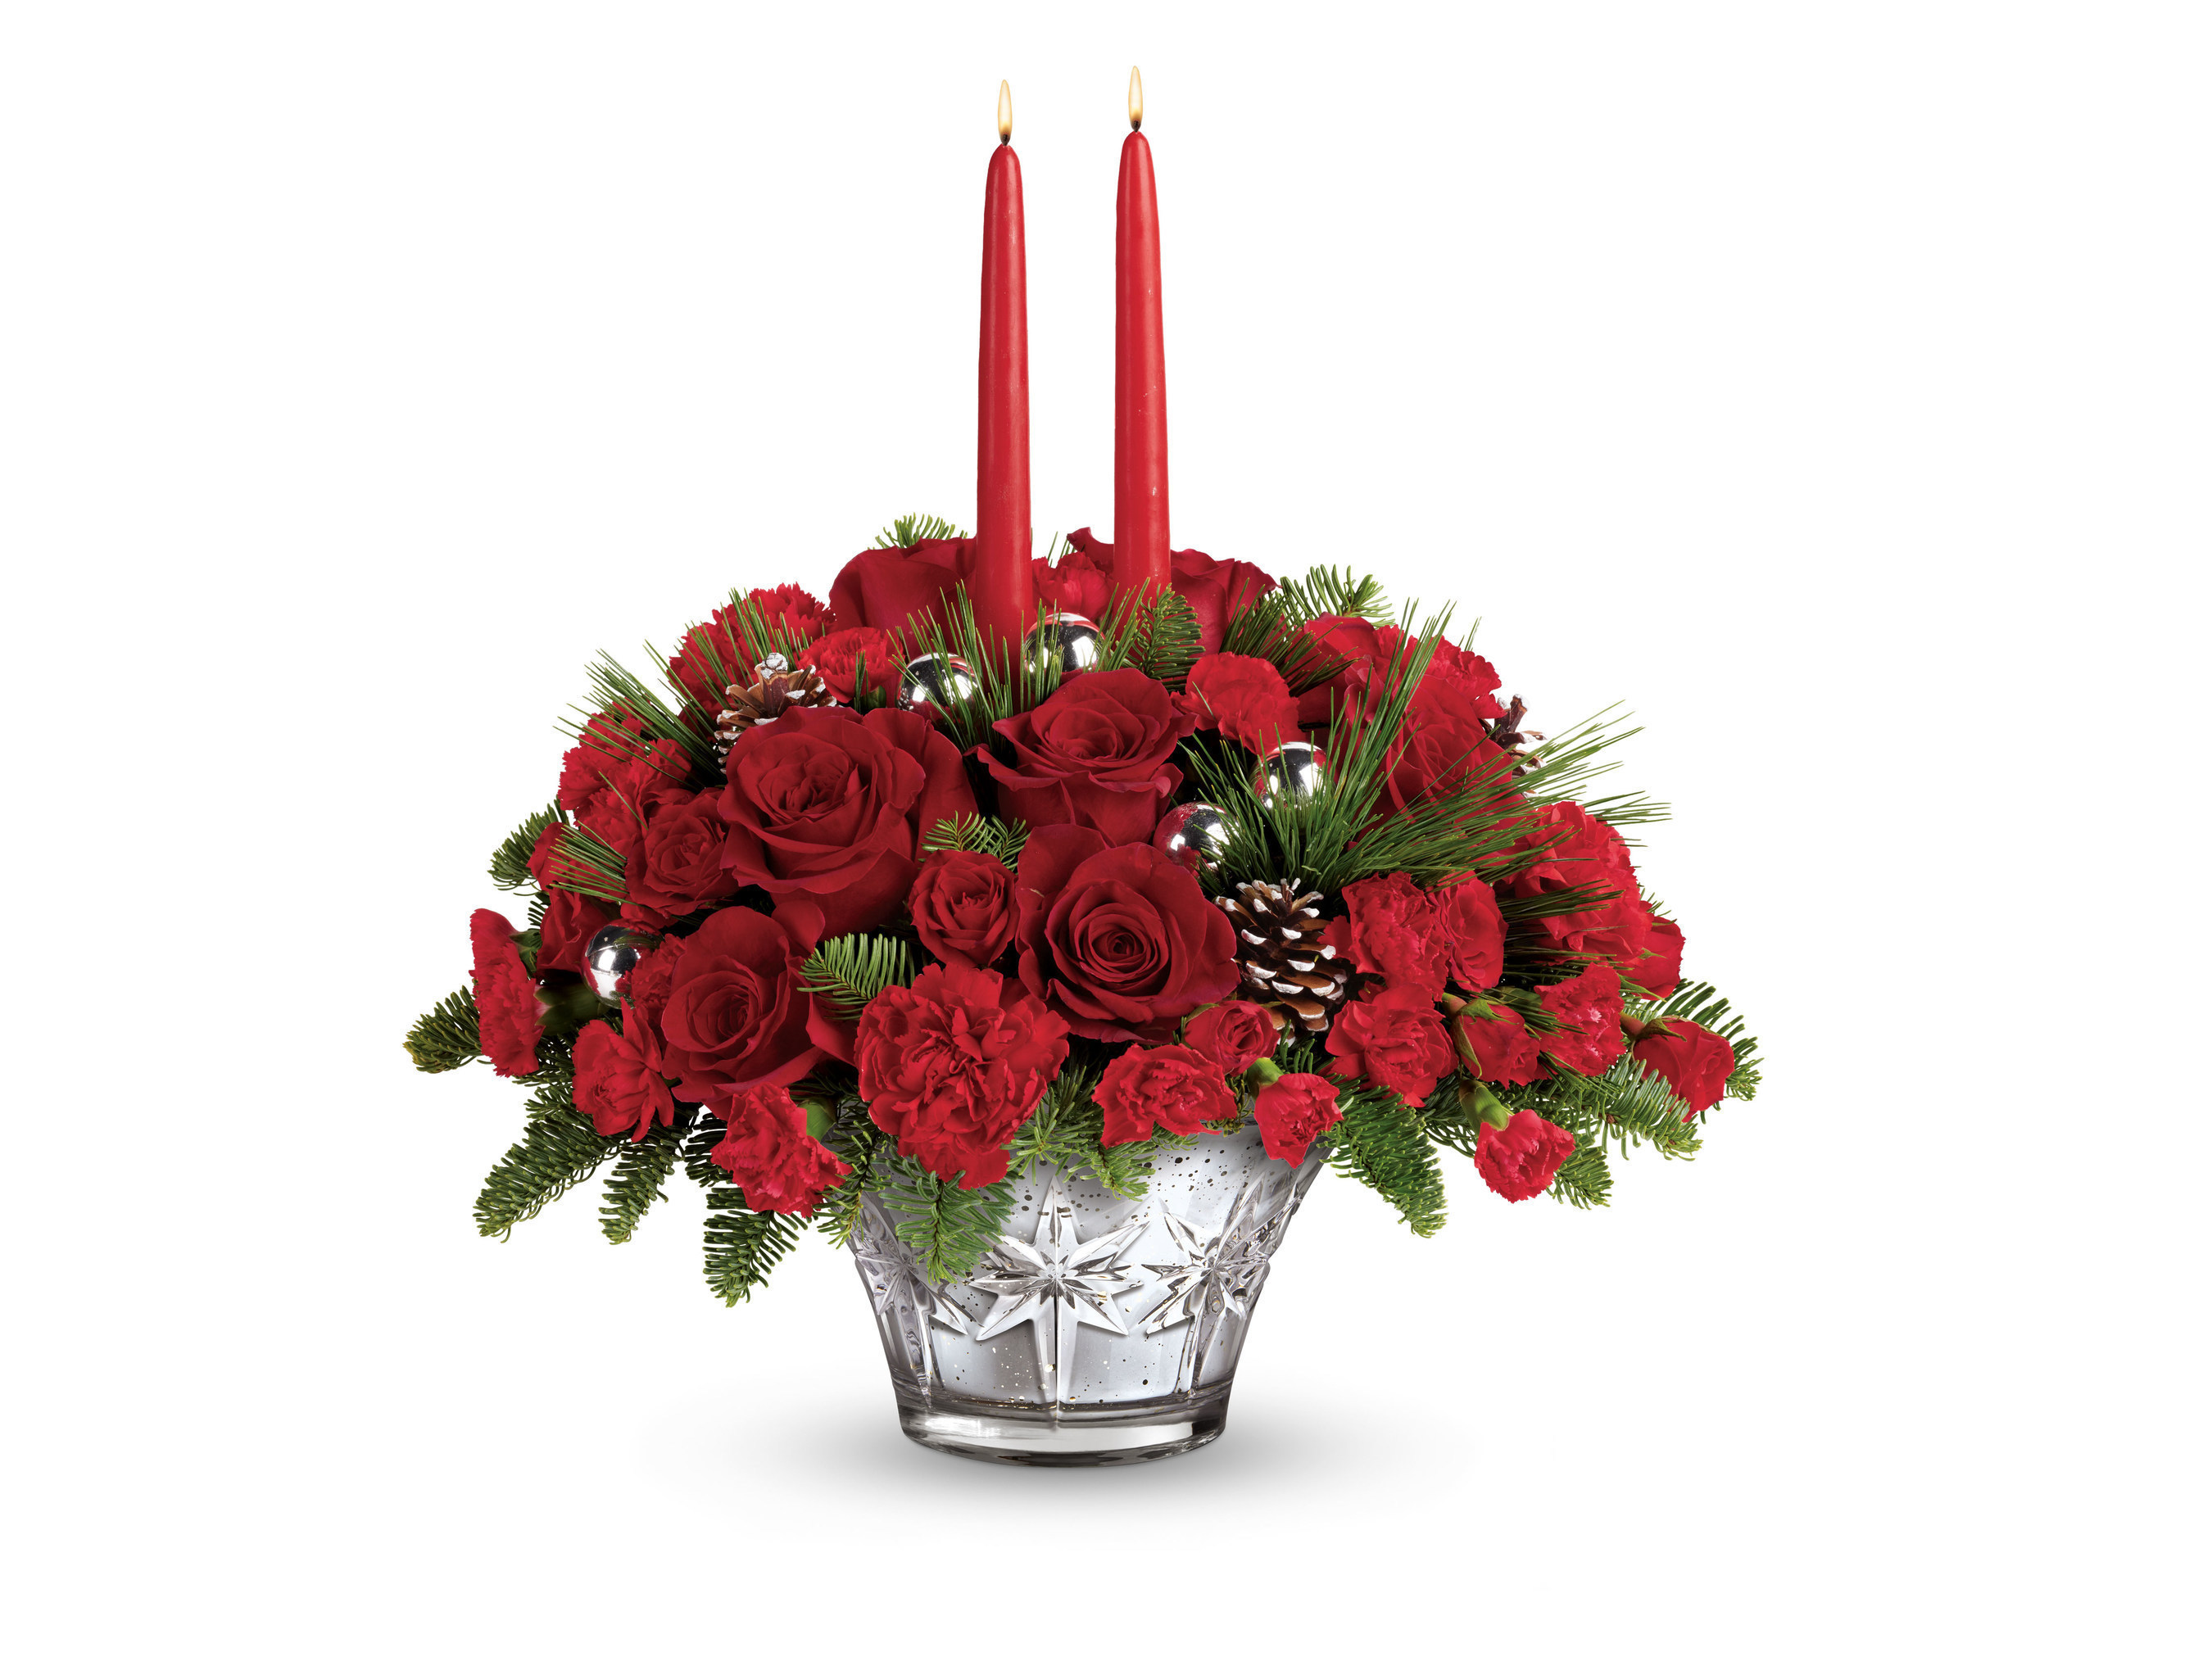 Teleflora's Sparkling Star Centerpiece from its NEW 2016 Holiday Collection (www.teleflora.com)